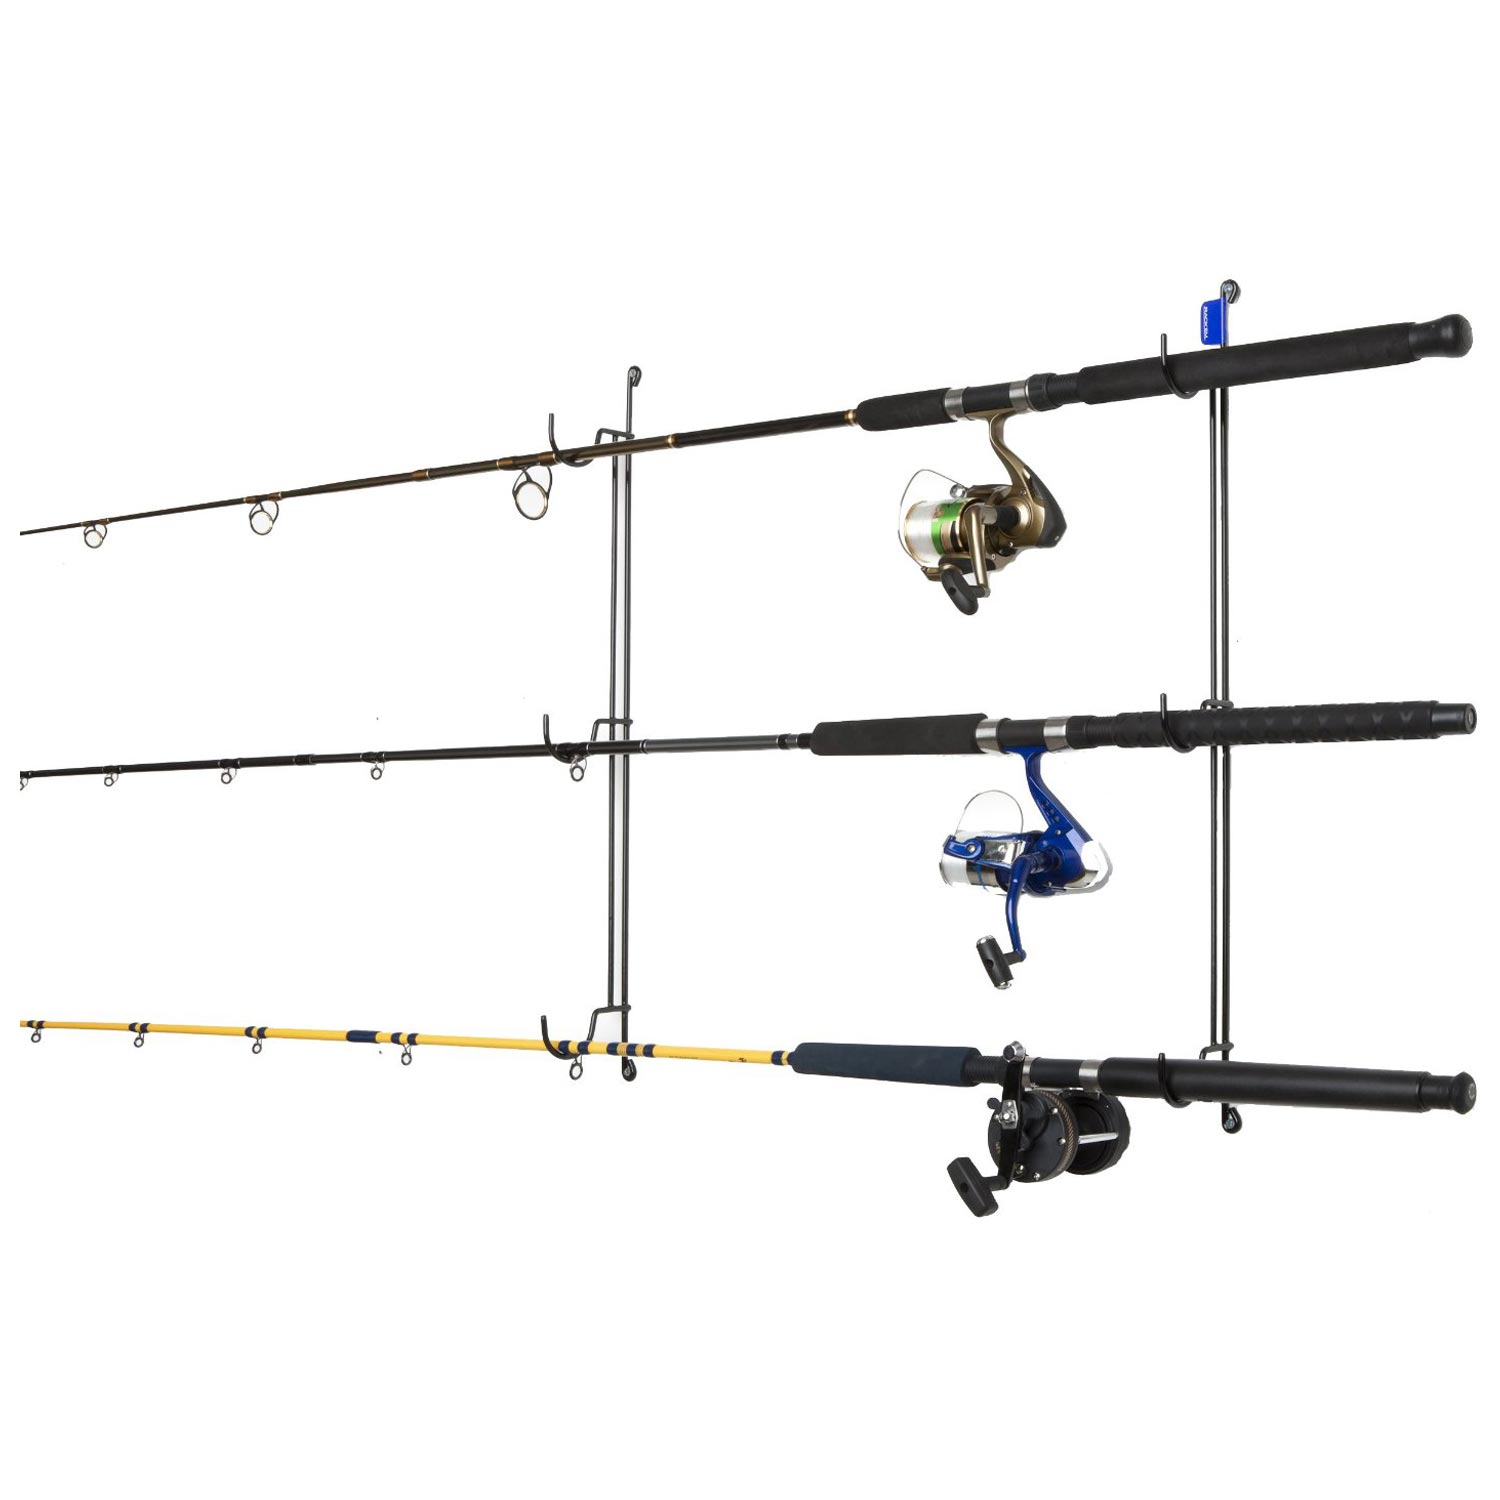 Horizontal fishing rod rack coated wire 3 rods dcg stores for Horizontal fishing rod rack